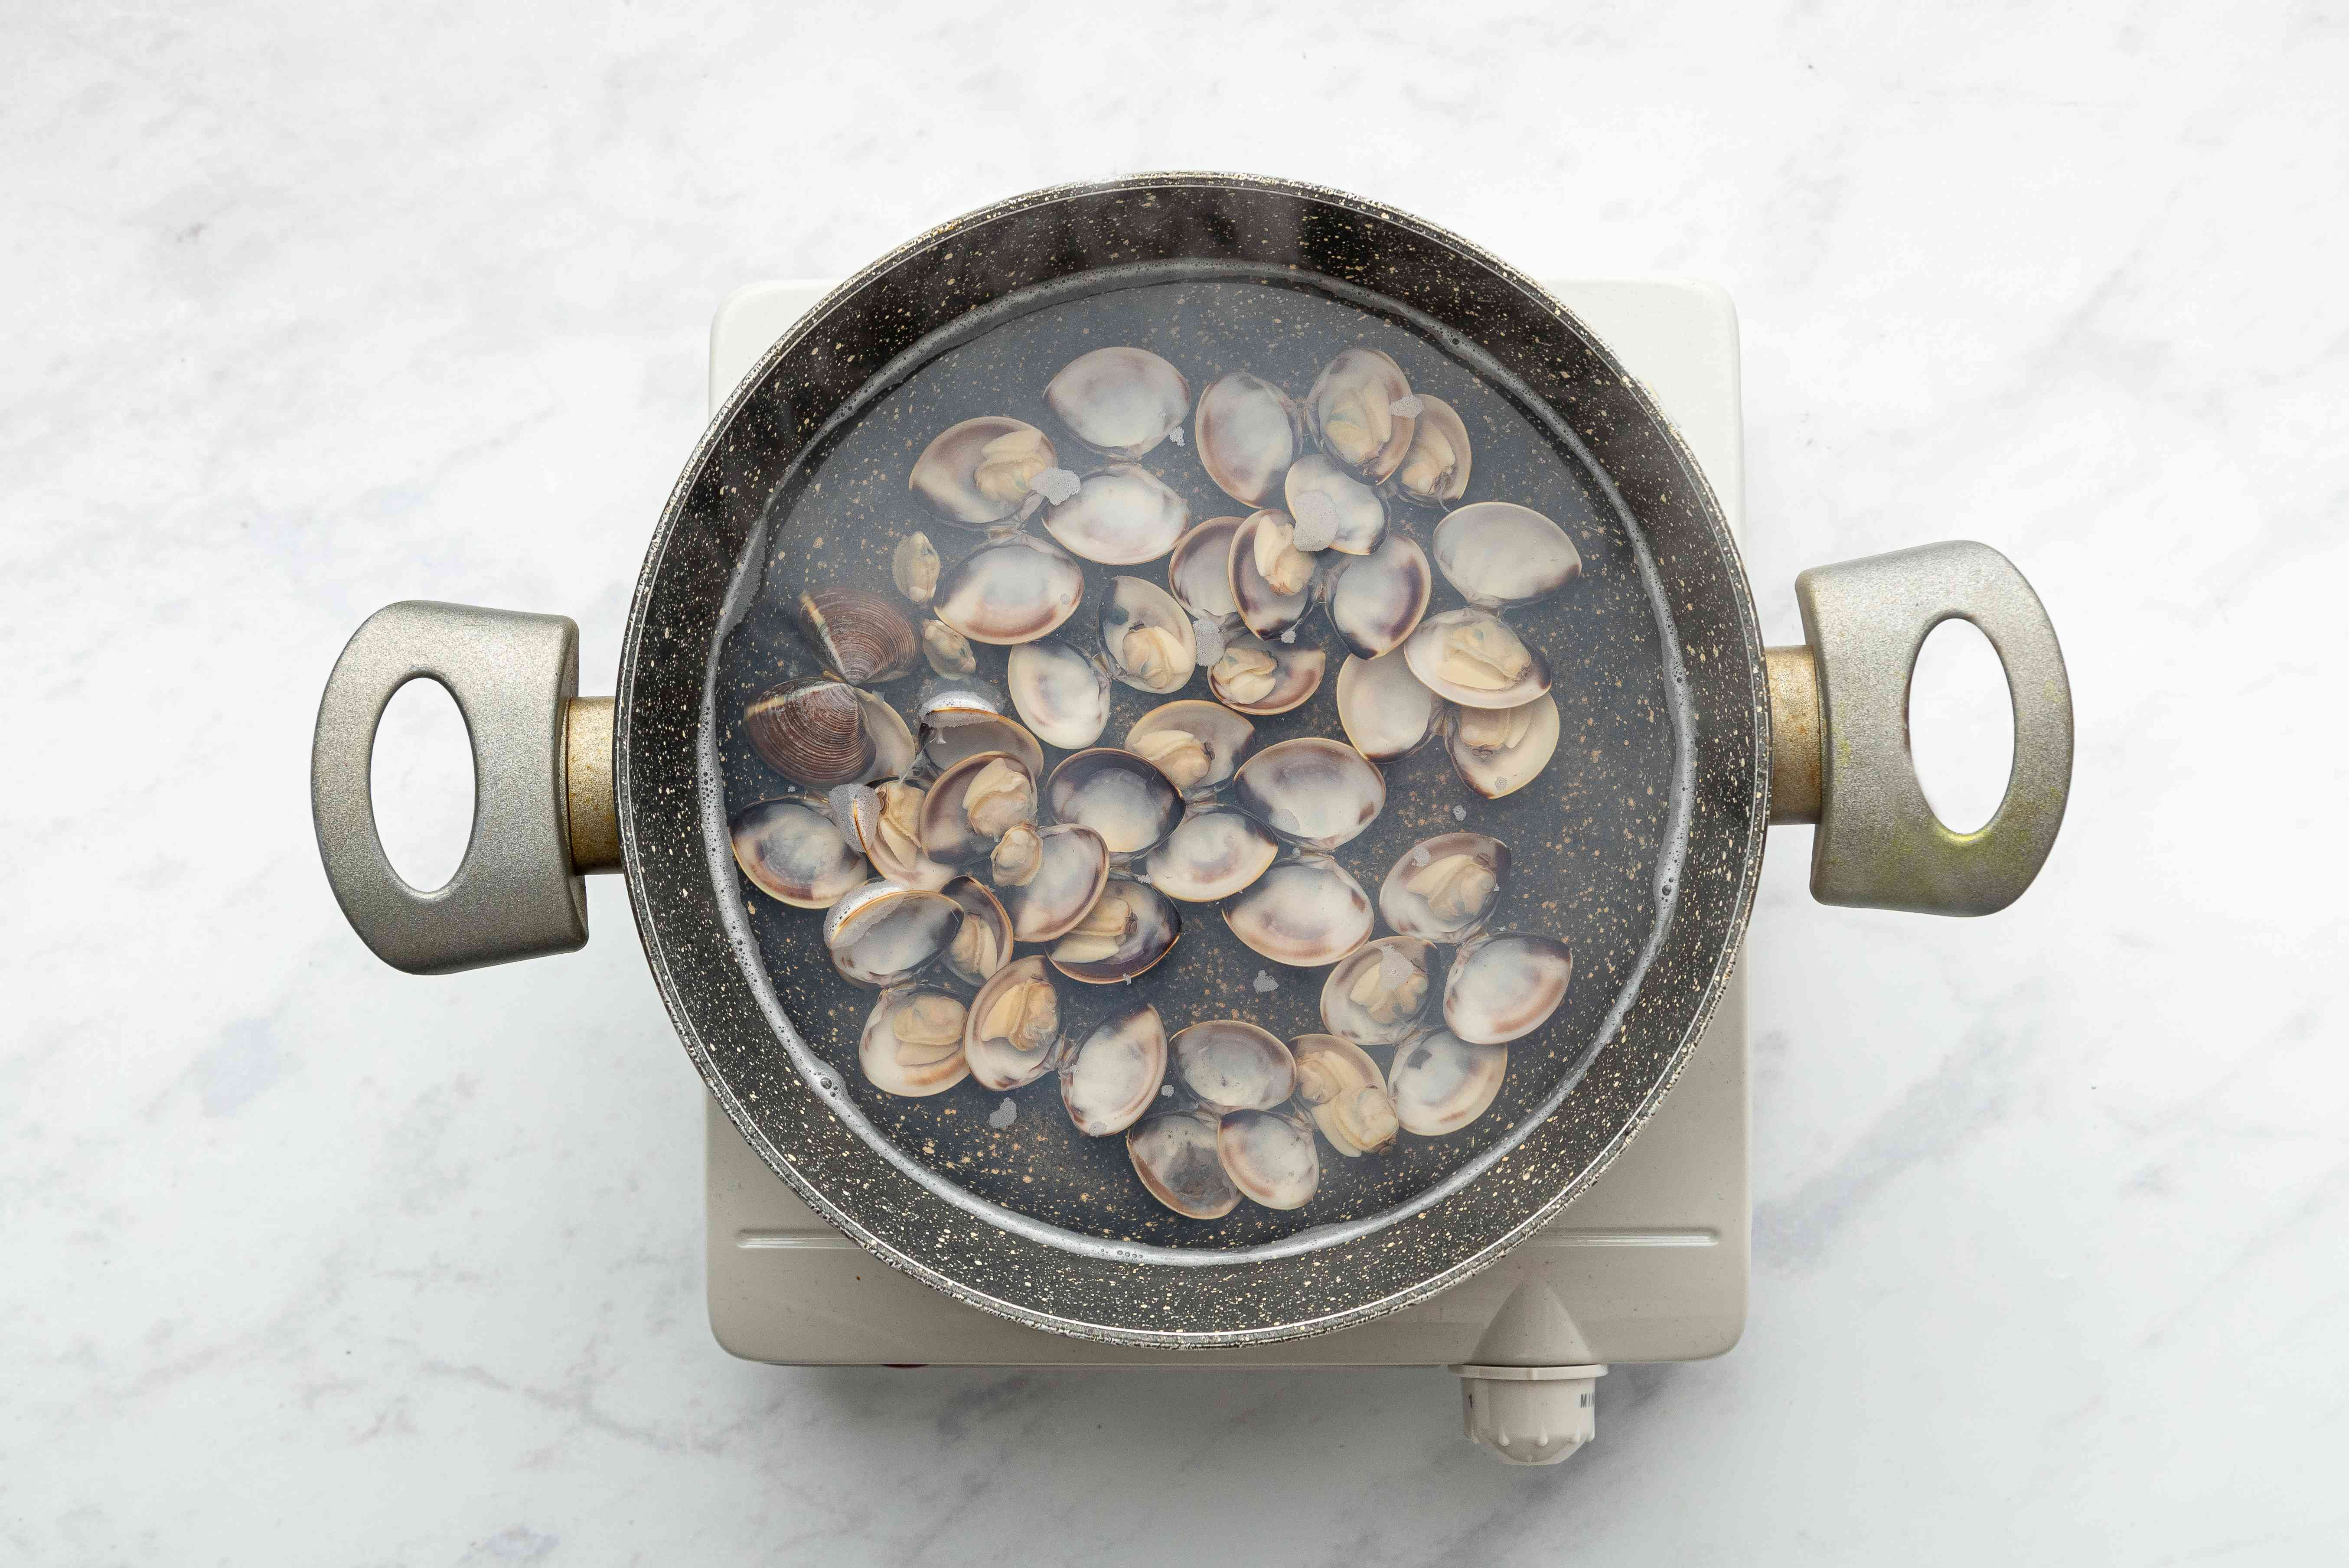 clams in a pot of water